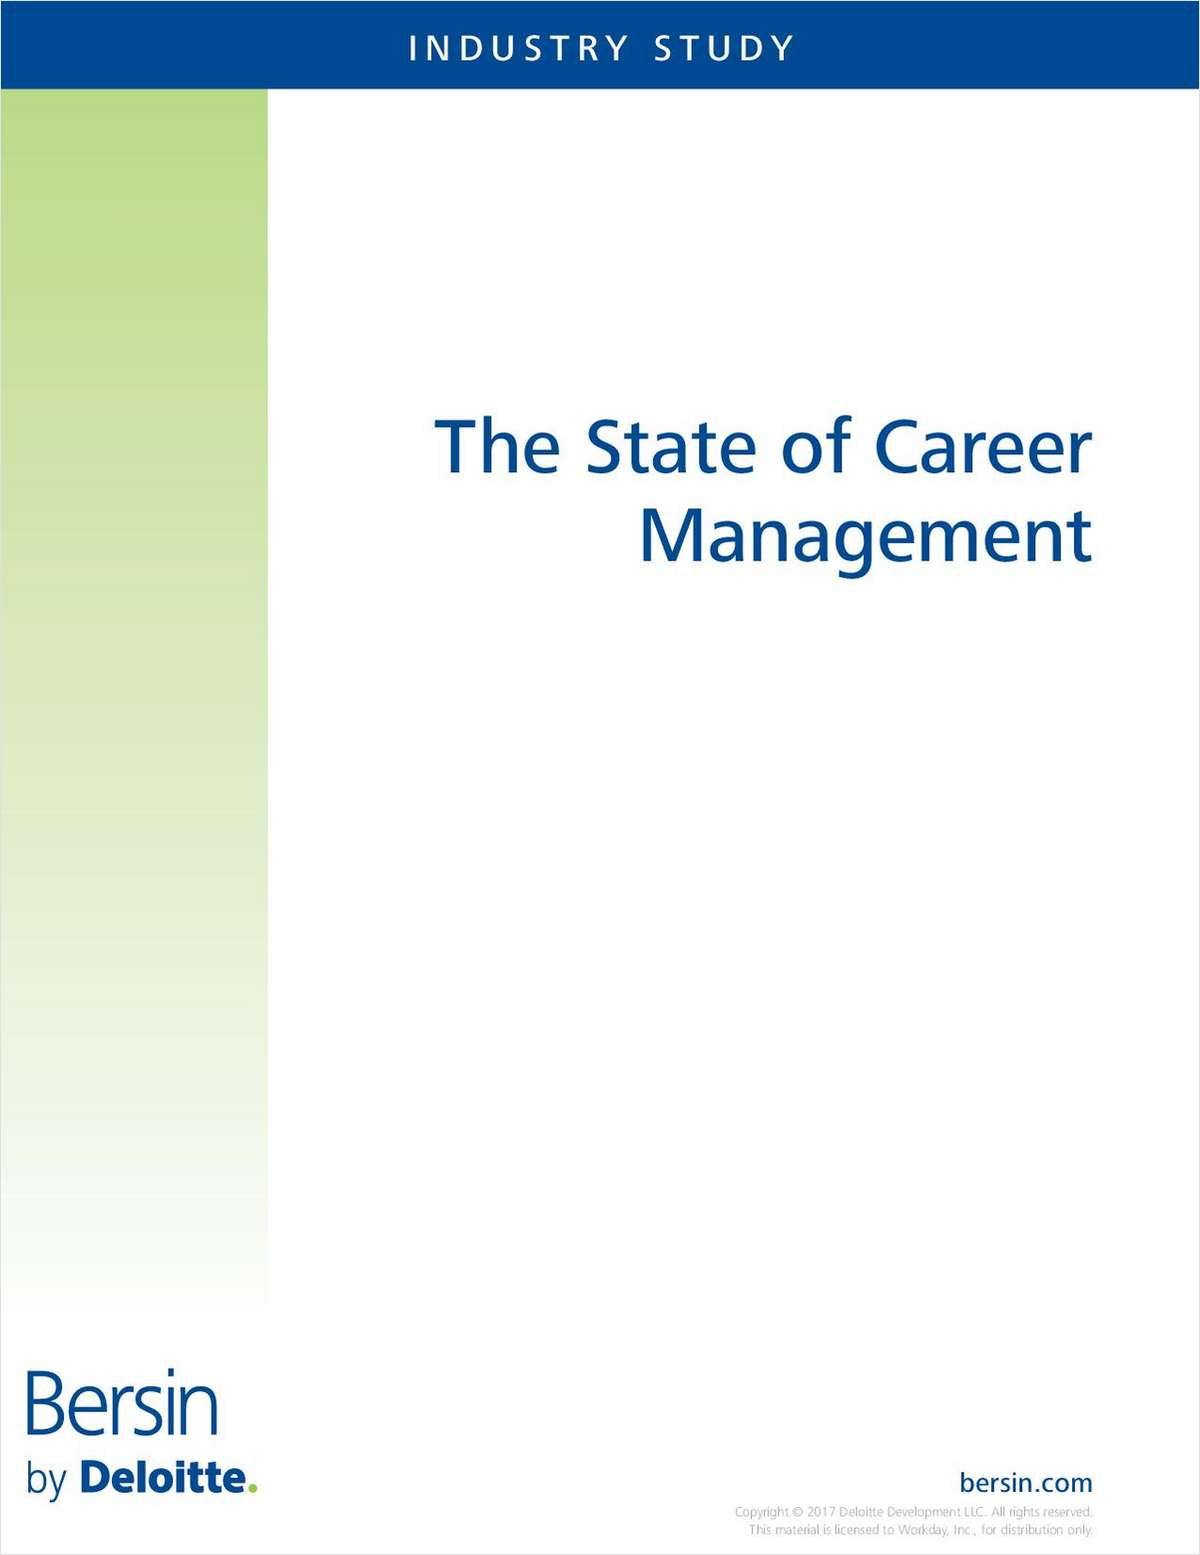 The State of Career Management